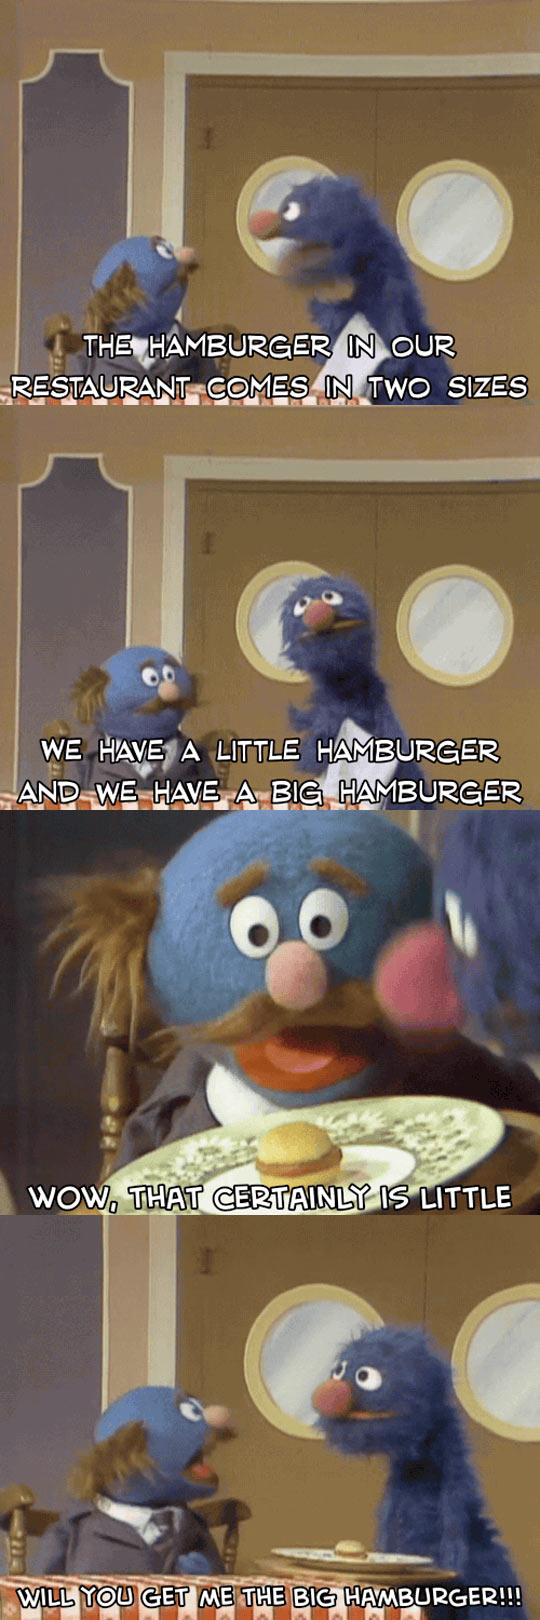 Hamburger Comes In Two Sizes